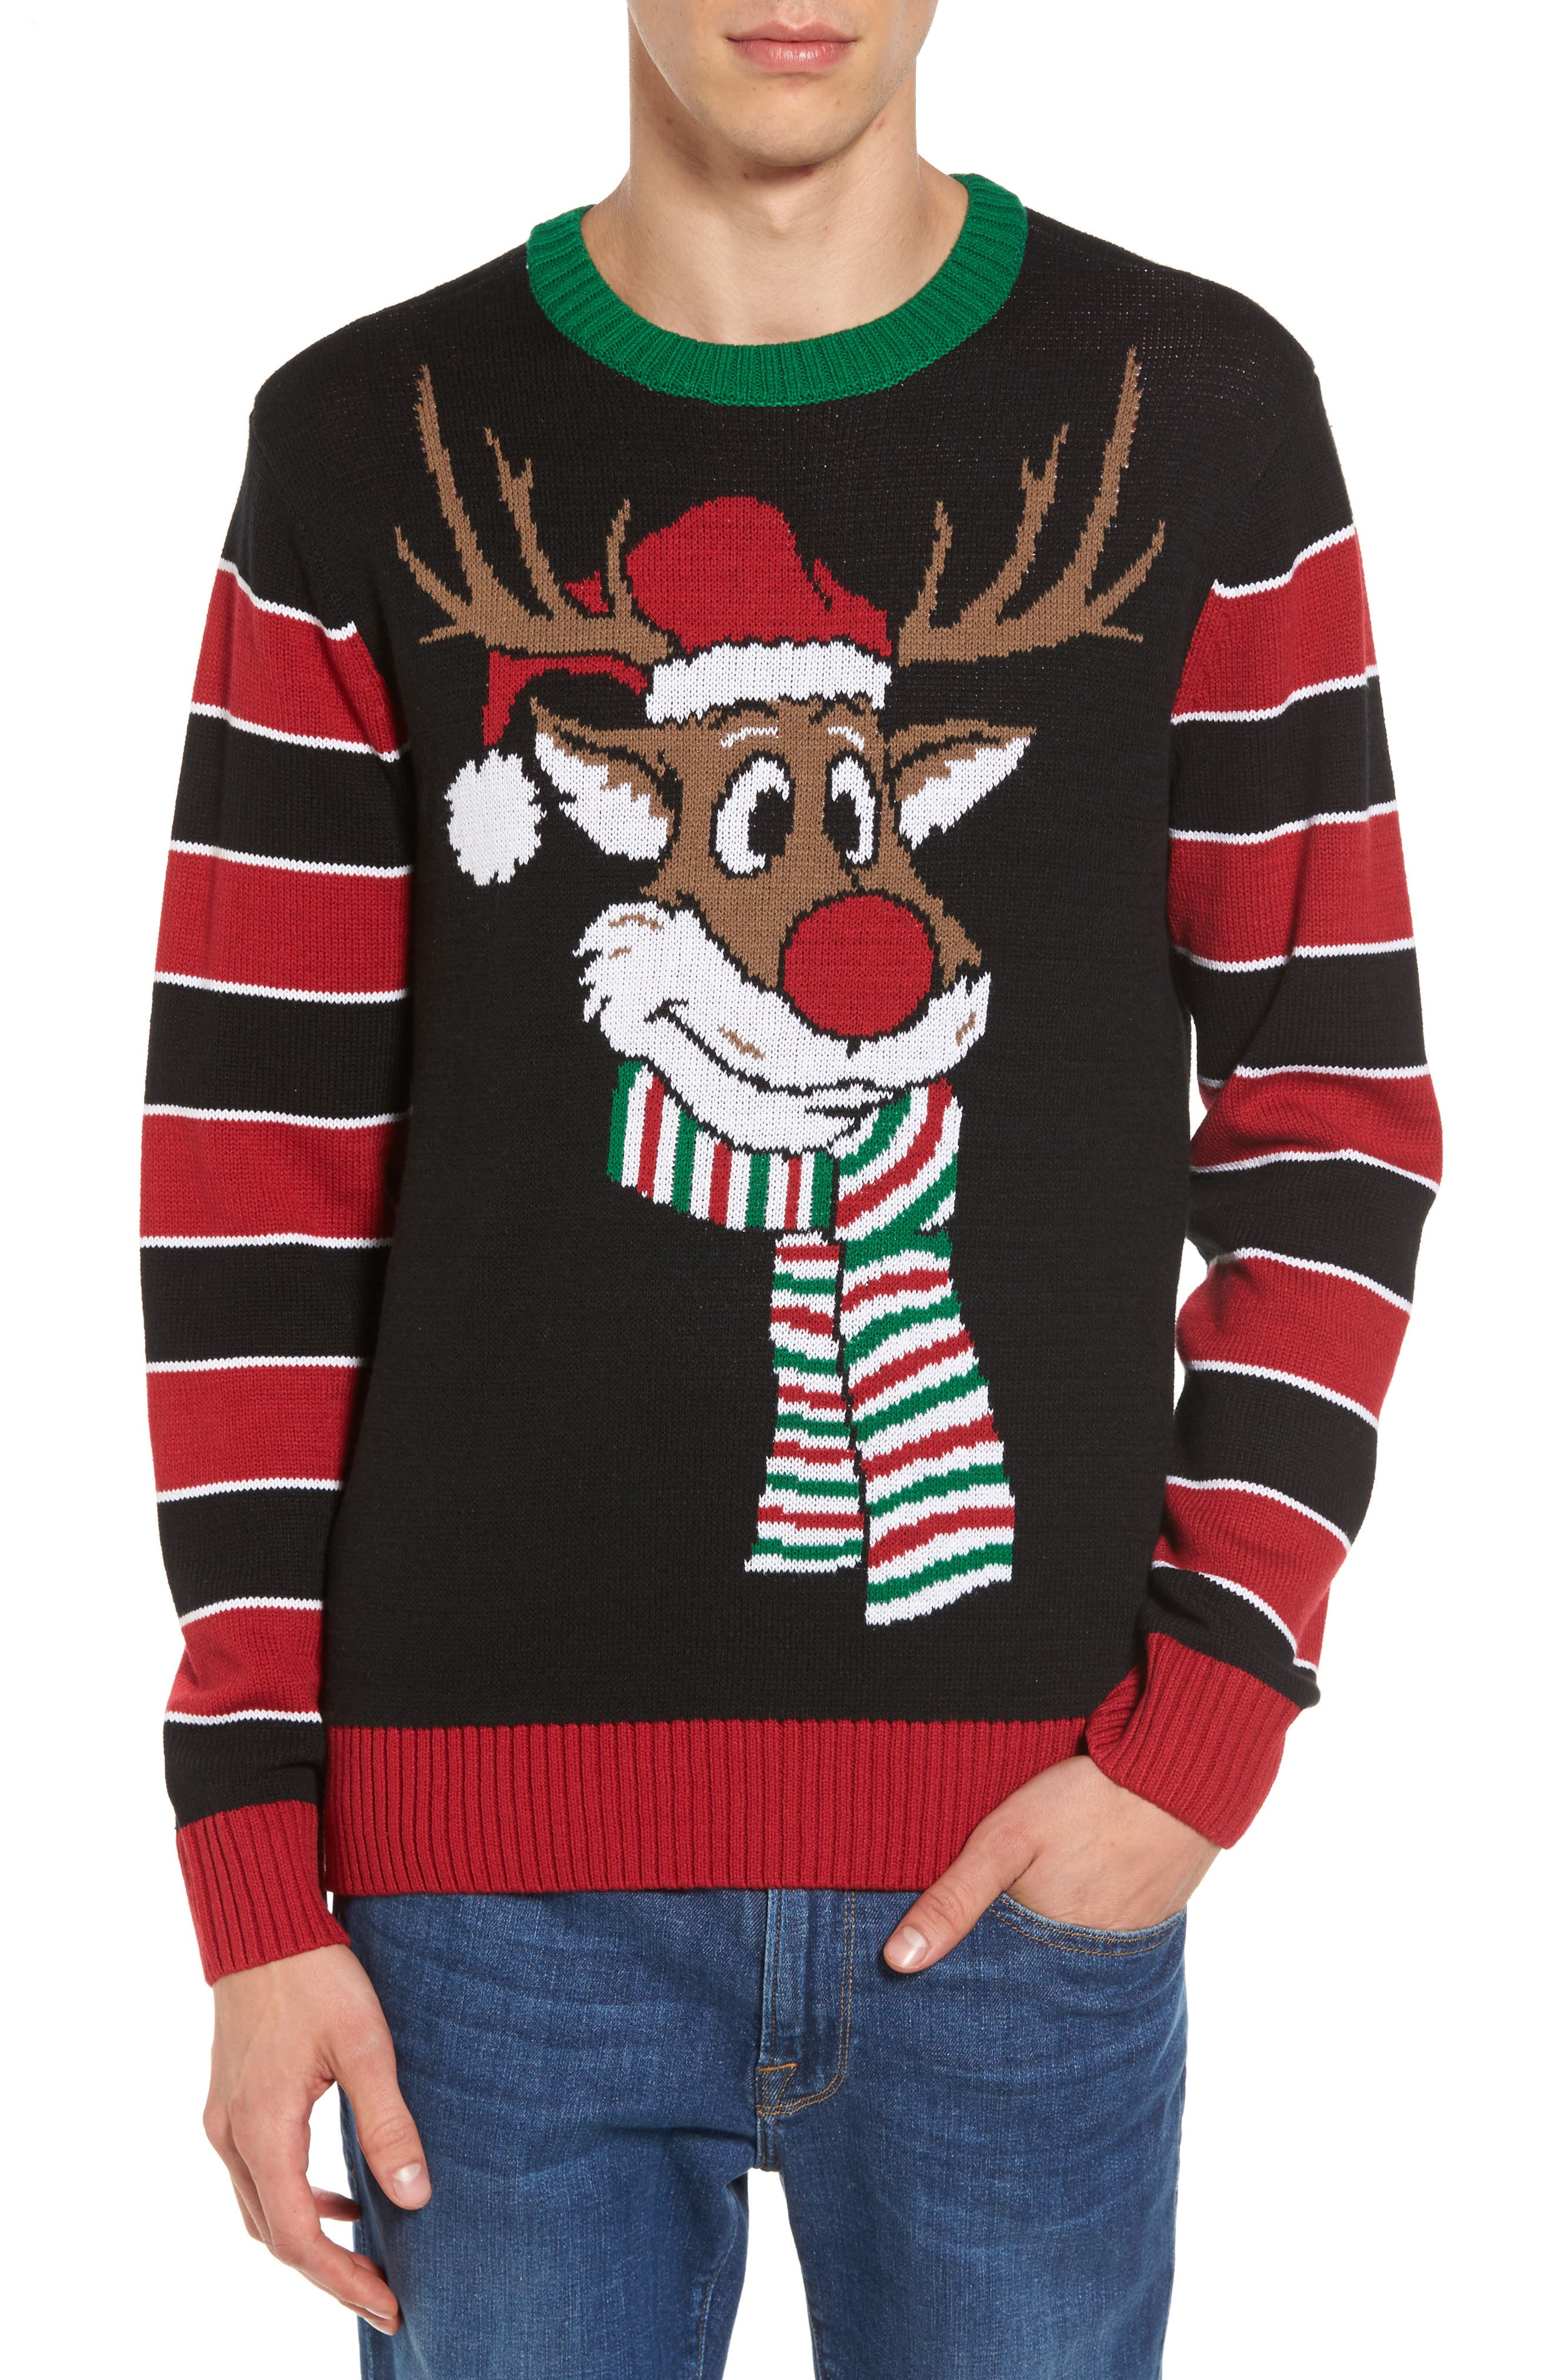 The Rail Reindeer Sweater